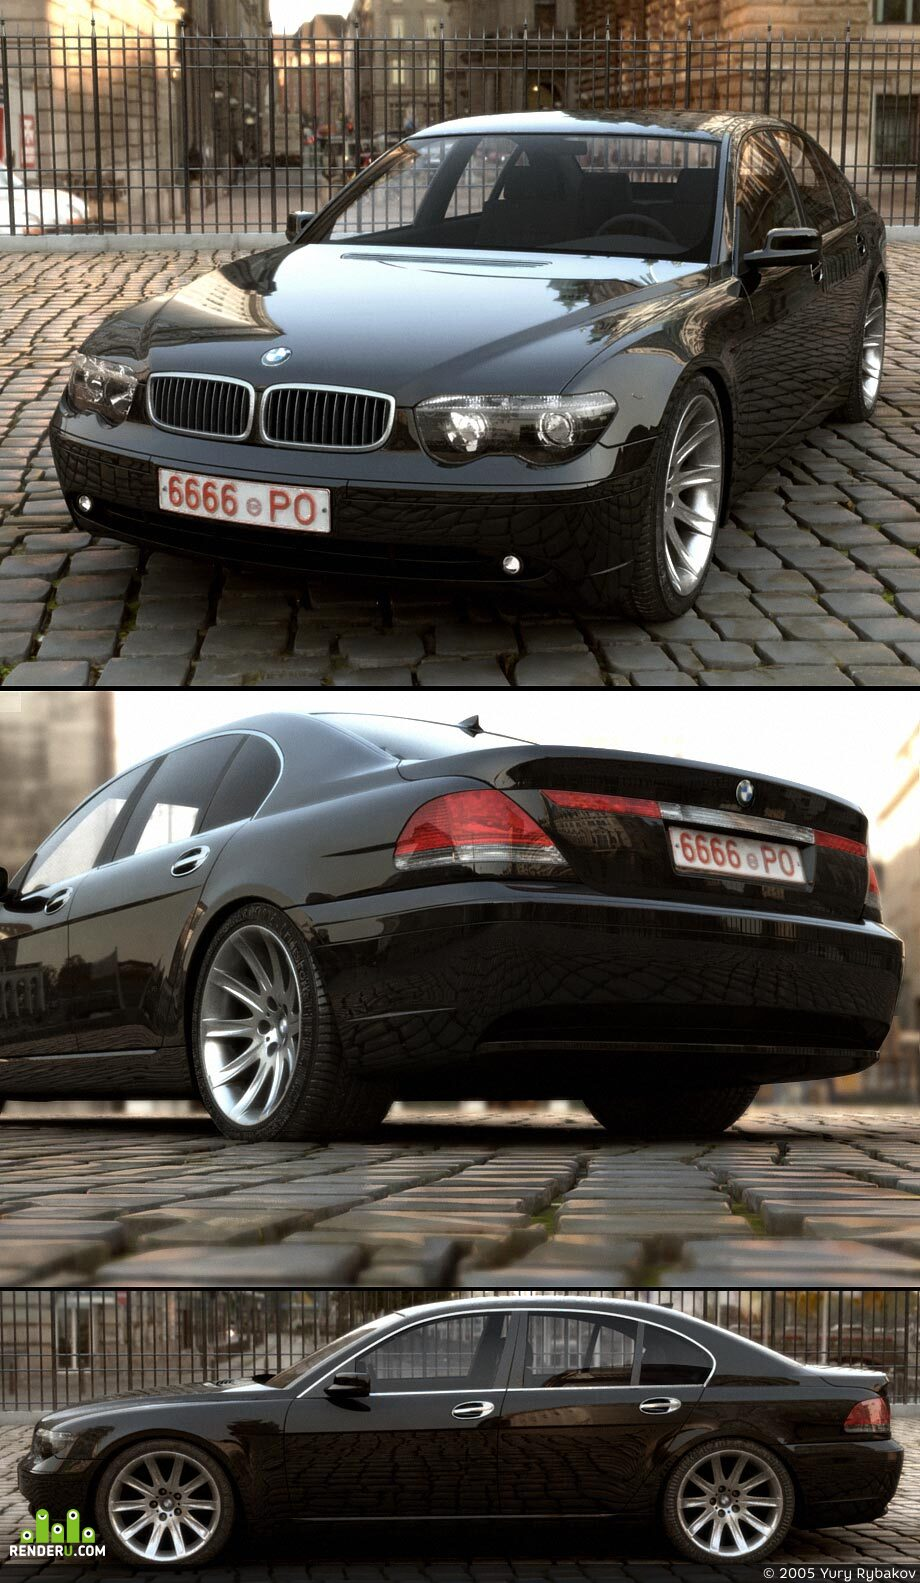 preview ¤ BMW 7 series (E65)